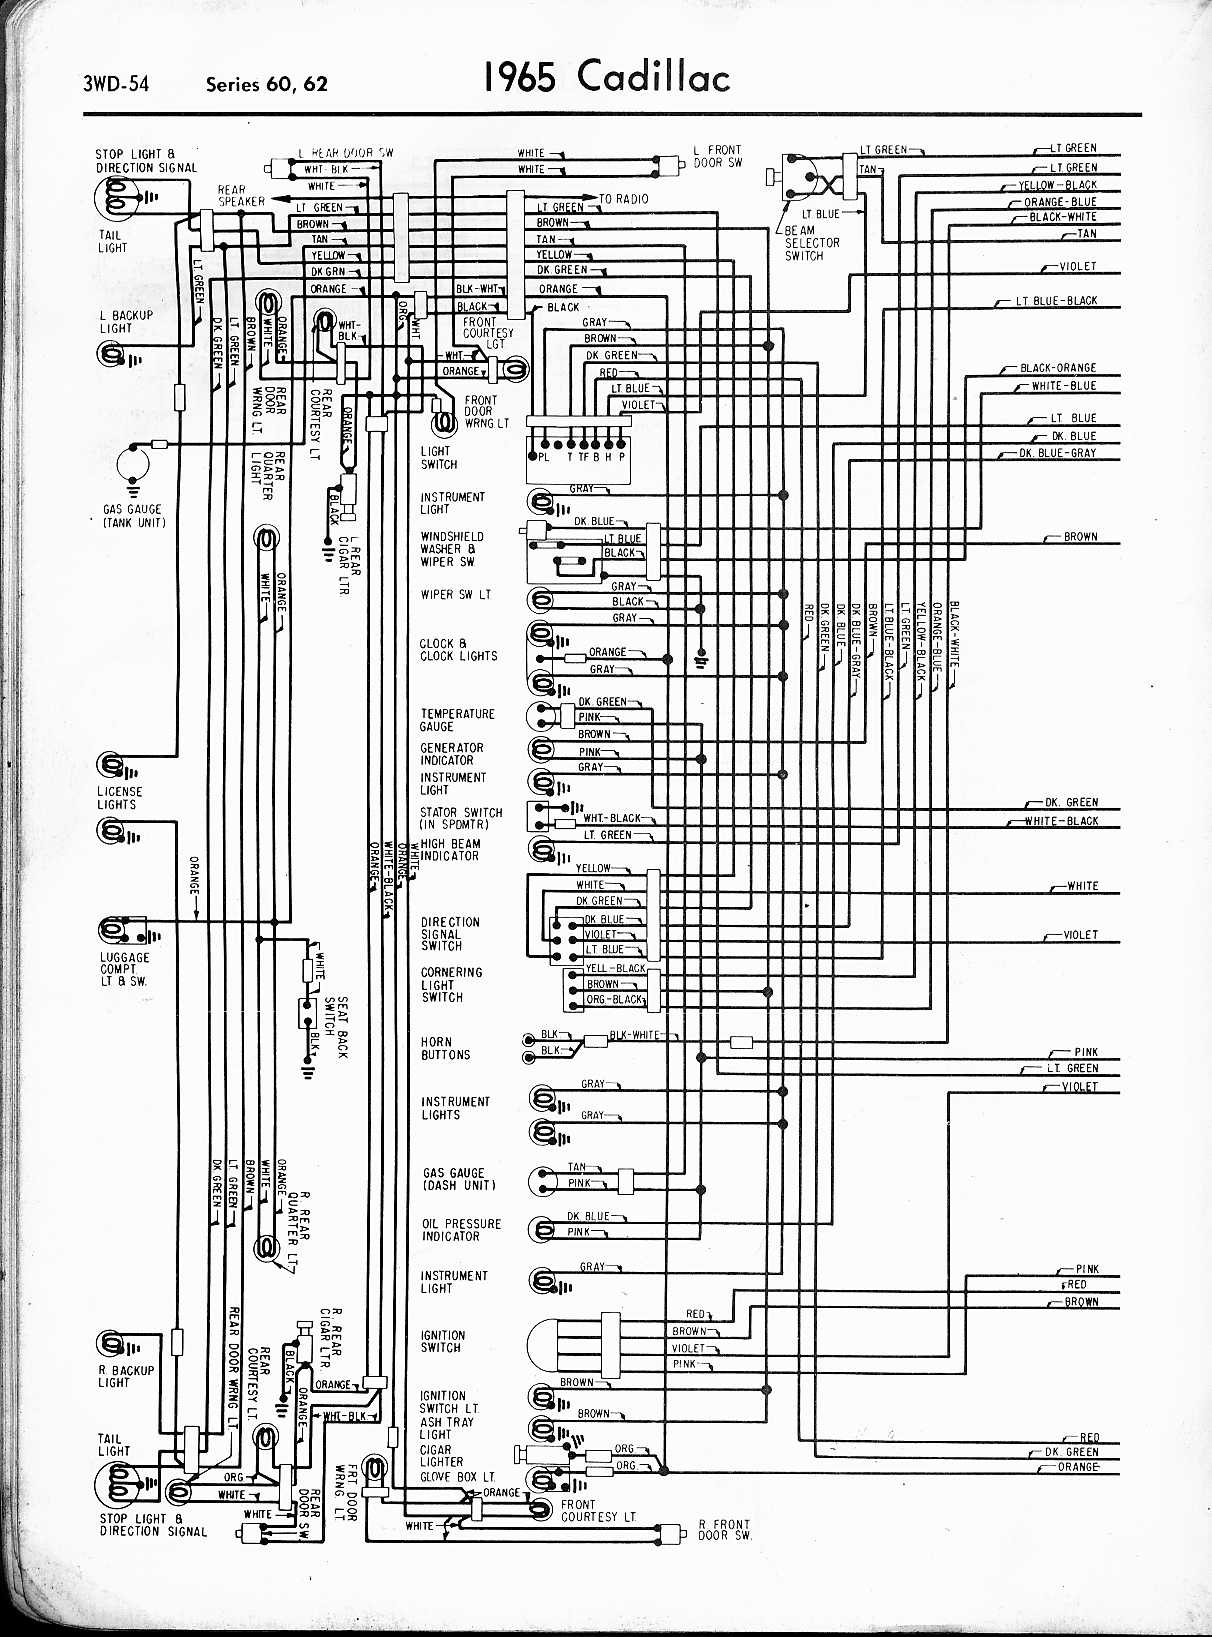 64 Cadillac Fuse Box Wiring Library 1964 5 Mustang Diagram Dash 1965 Series 6062 Left